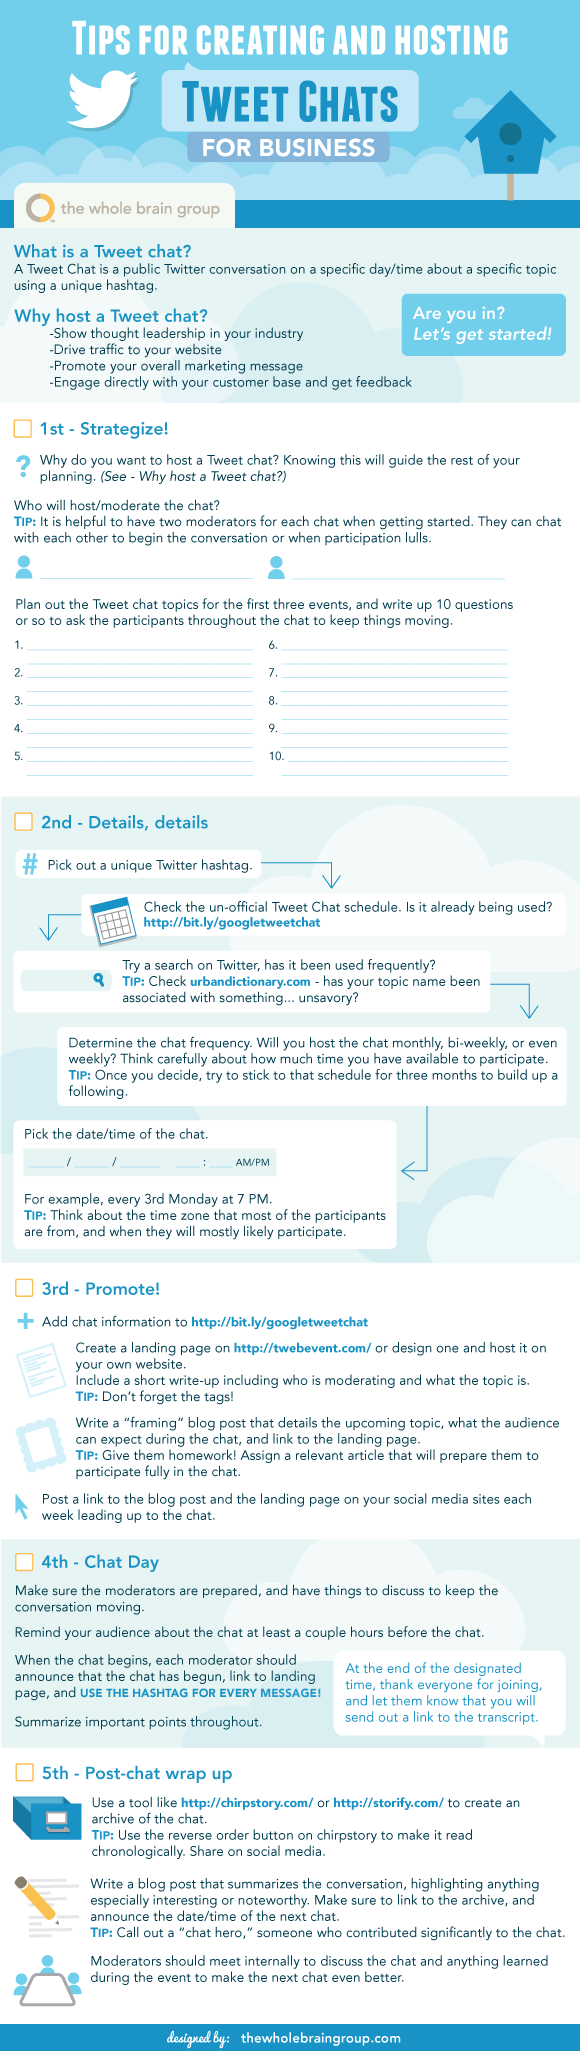 Sensible Tweet Chat Checklist for Businesses